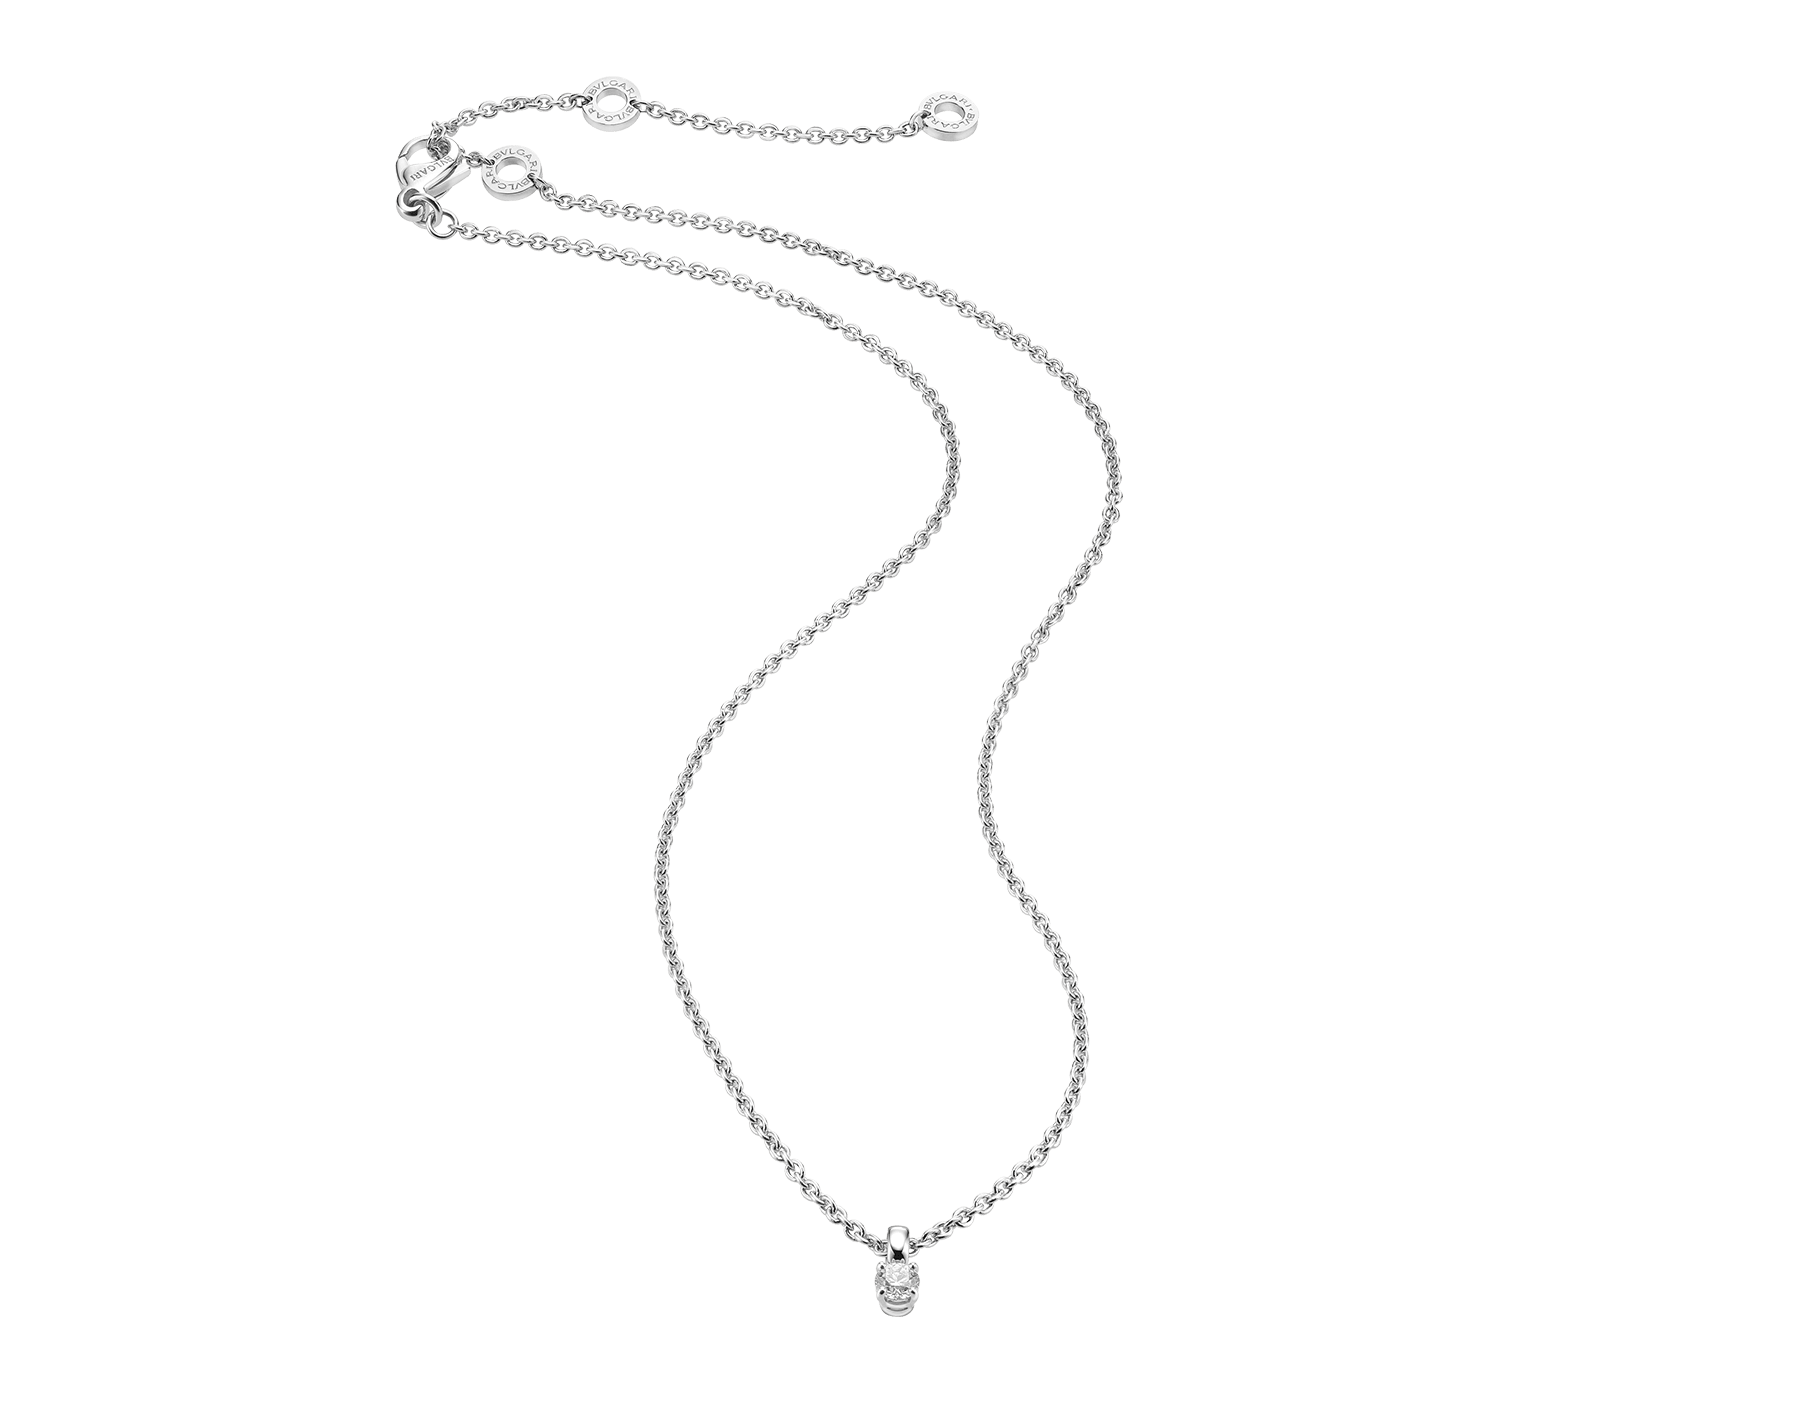 Griffe pendant with chain in 18 kt white gold with round brilliant-cut diamond. Available from 0.50 ct. A classic setting that allows the pureness and beauty of the solitaire diamond to assert itself. 338200 image 1